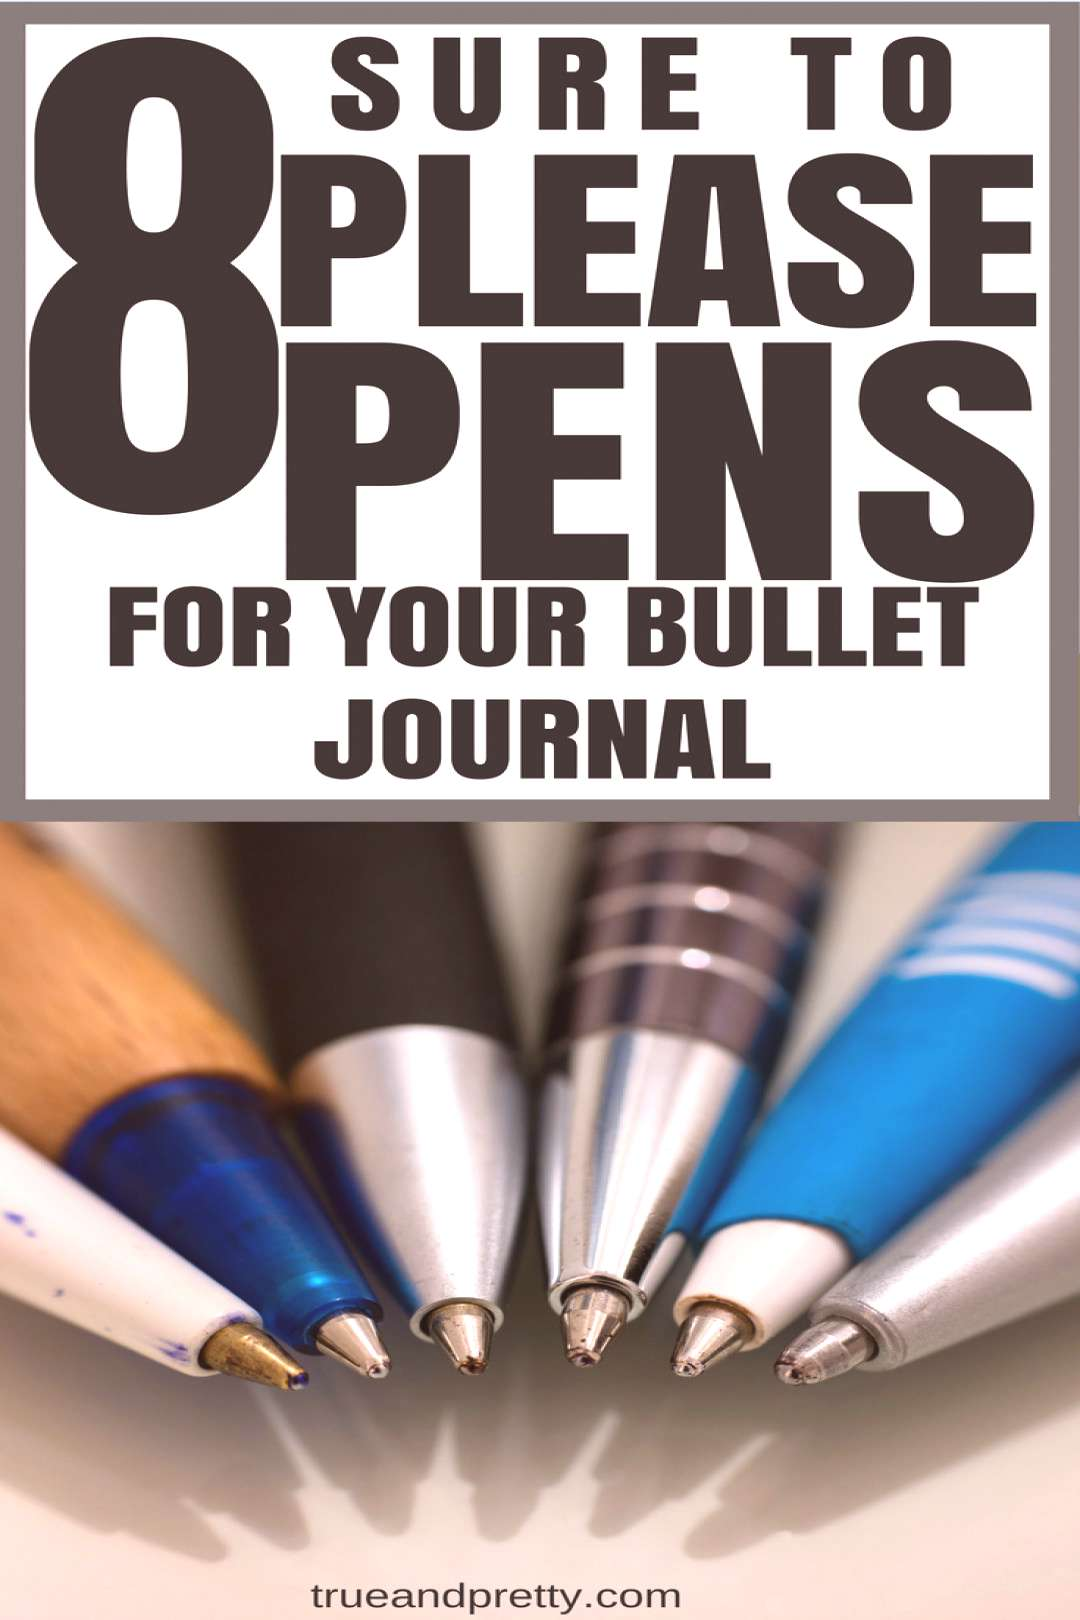 8 Sure-to-Please Pens for Your Bullet Journal -